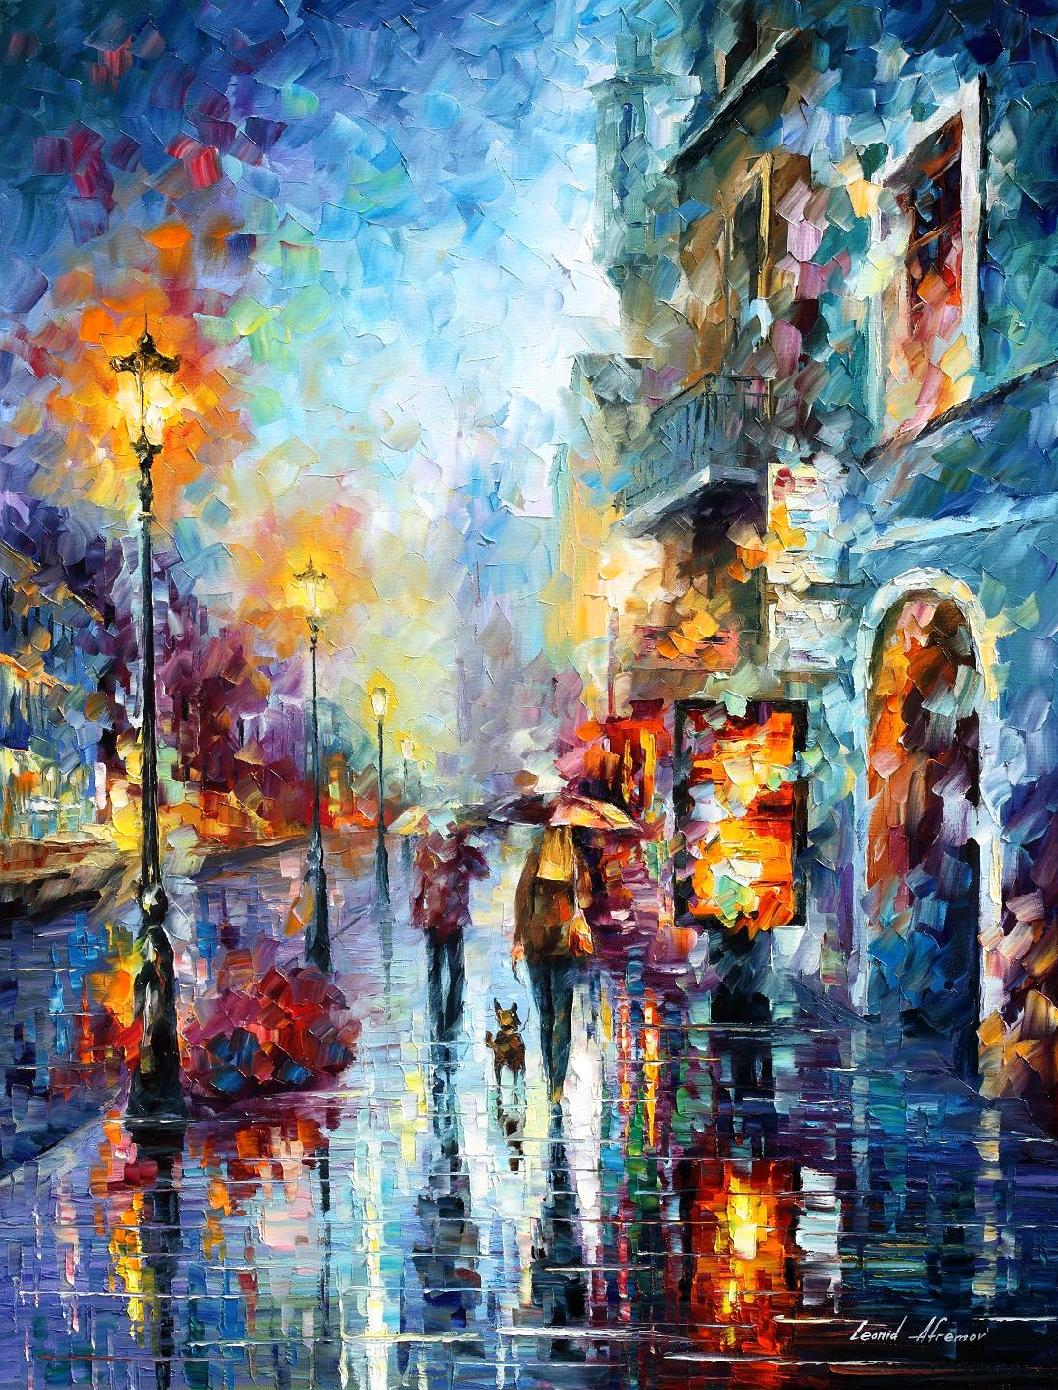 "MELODY OF PASSION - PALETTE KNIFE Oil Painting On Canvas Abstract Wall Art By Leonid Afremov - Size 30""X40""  (100cm x 75cm) (offer)"